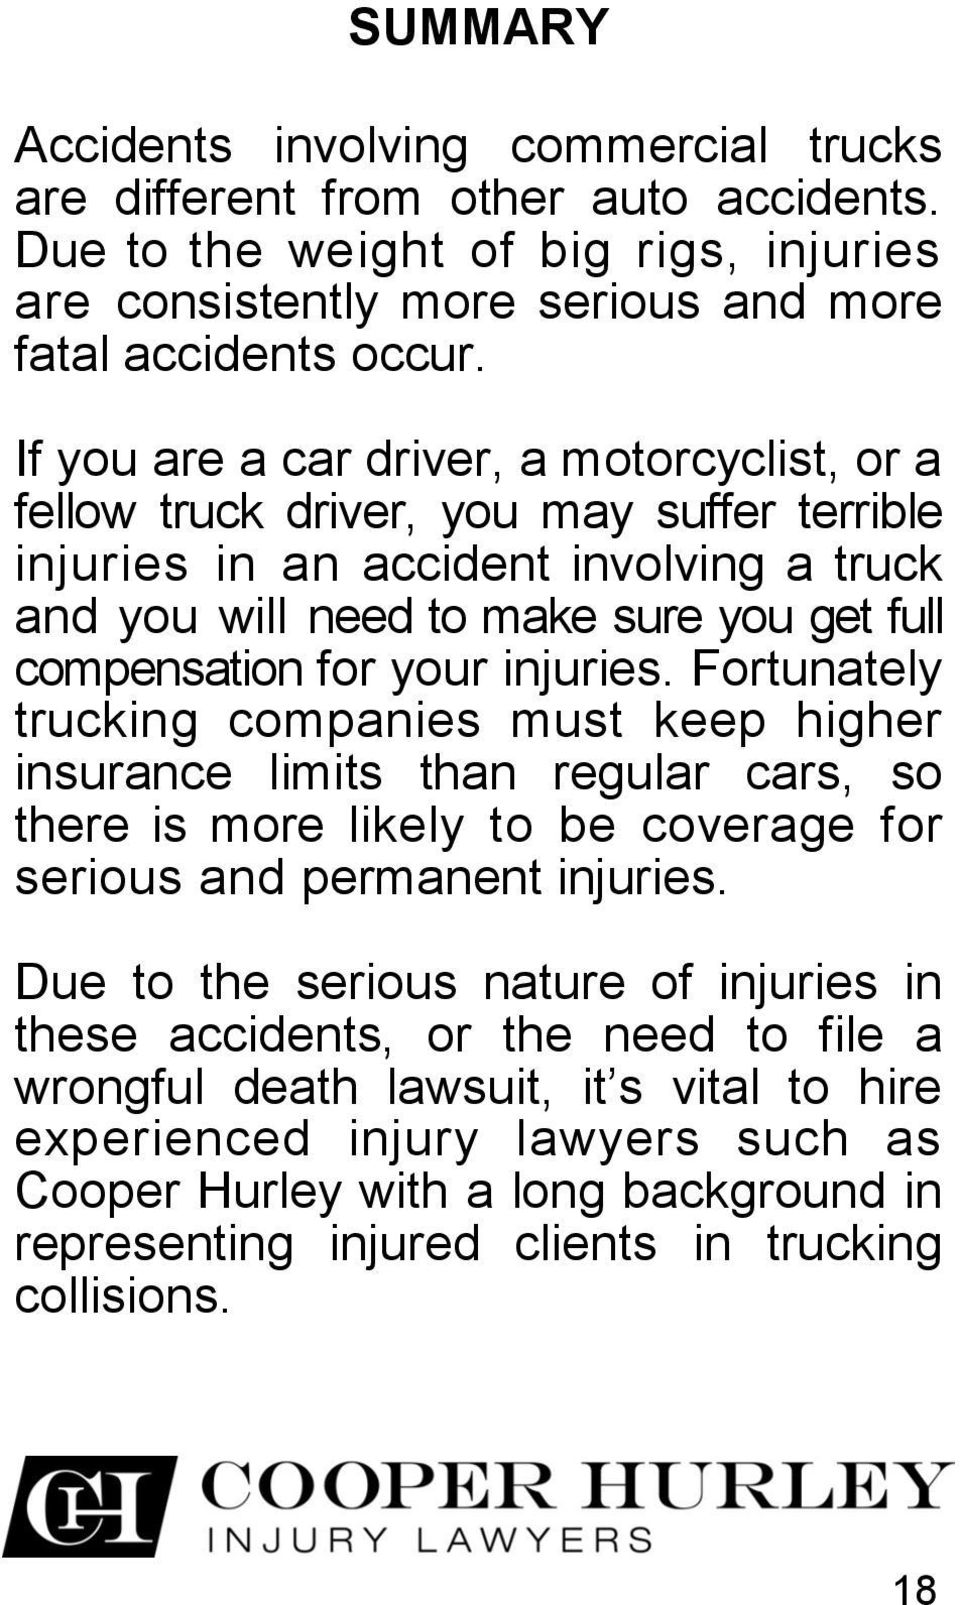 injuries. Fortunately trucking companies must keep higher insurance limits than regular cars, so there is more likely to be coverage for serious and permanent injuries.